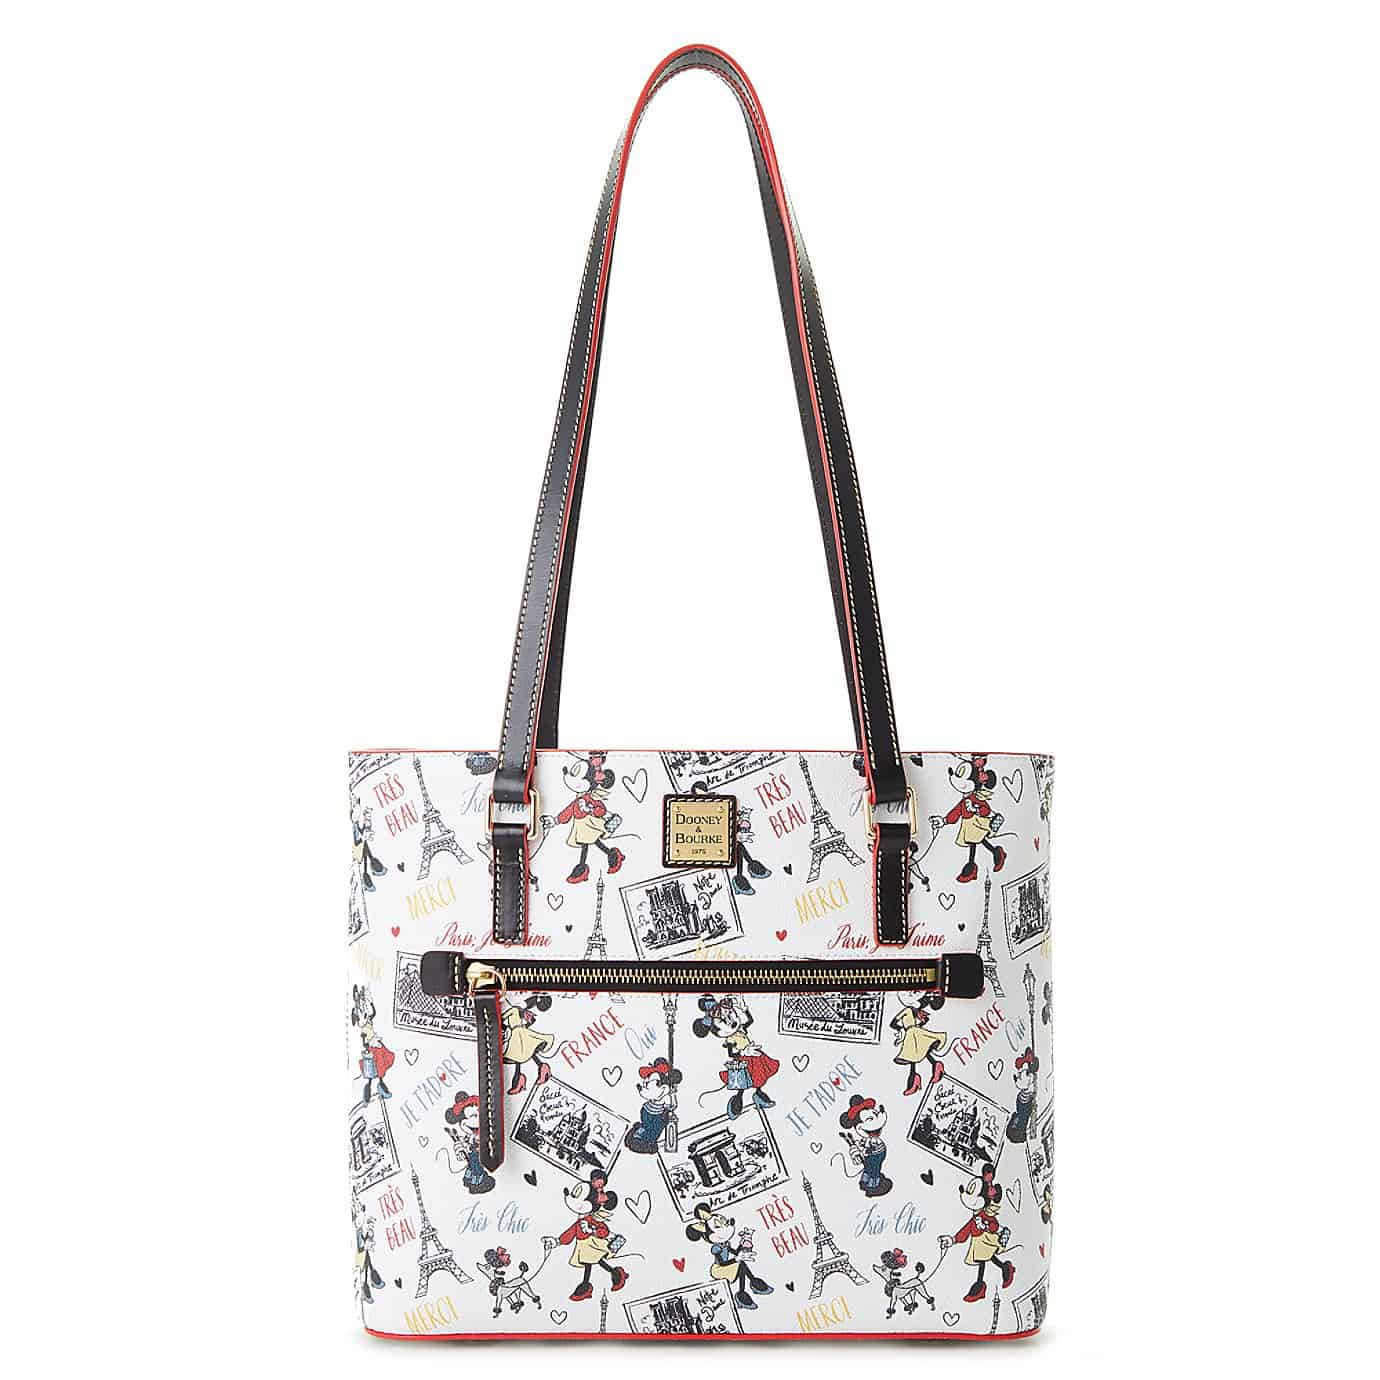 Disney Dooney chic minnie shopper tote front